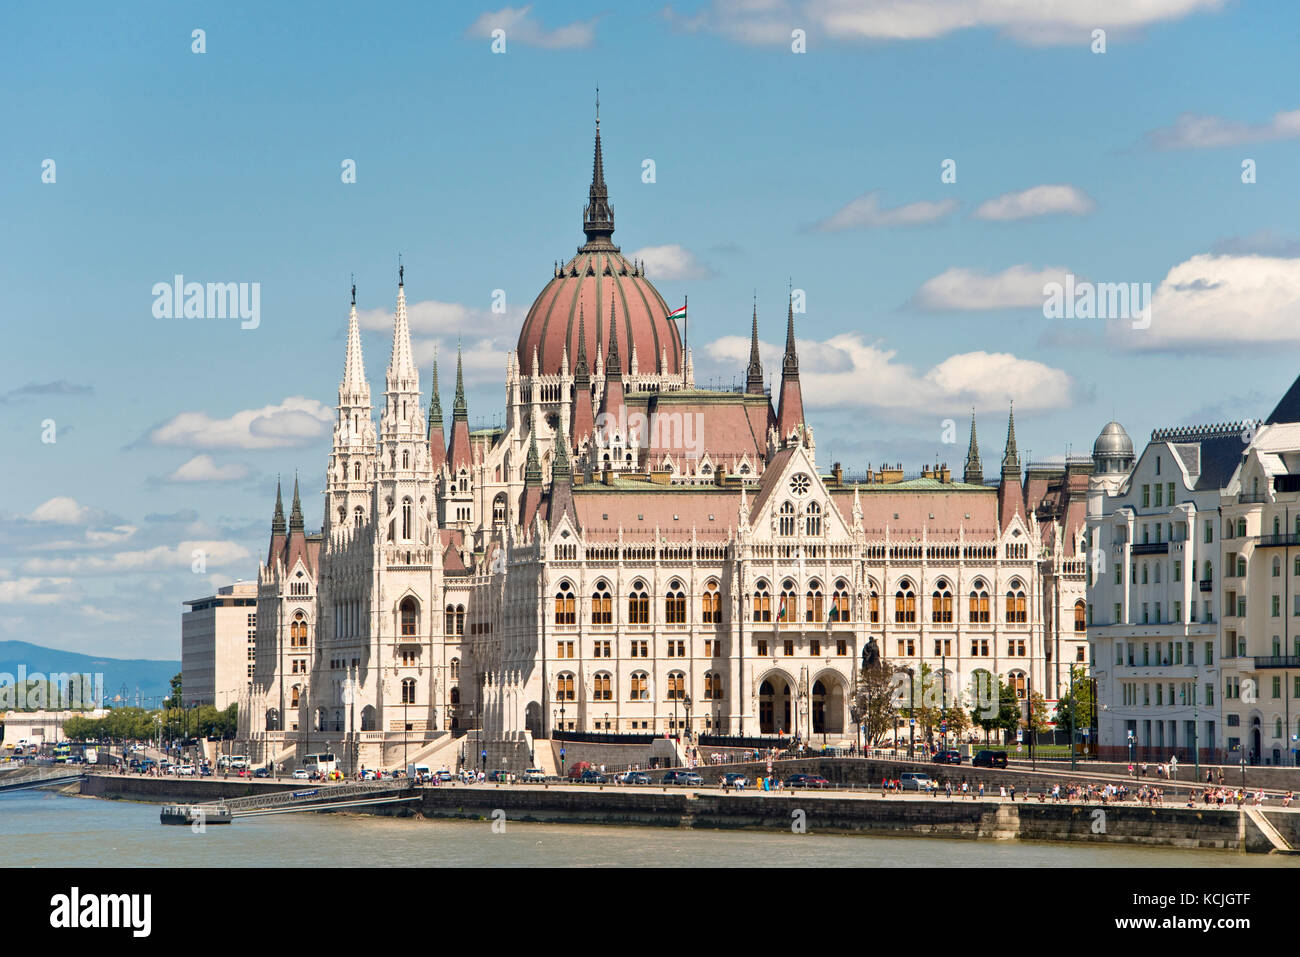 A view of the Hungarian Parliment Building on the Danube river in Budapest on a sunny day with blue sky. - Stock Image